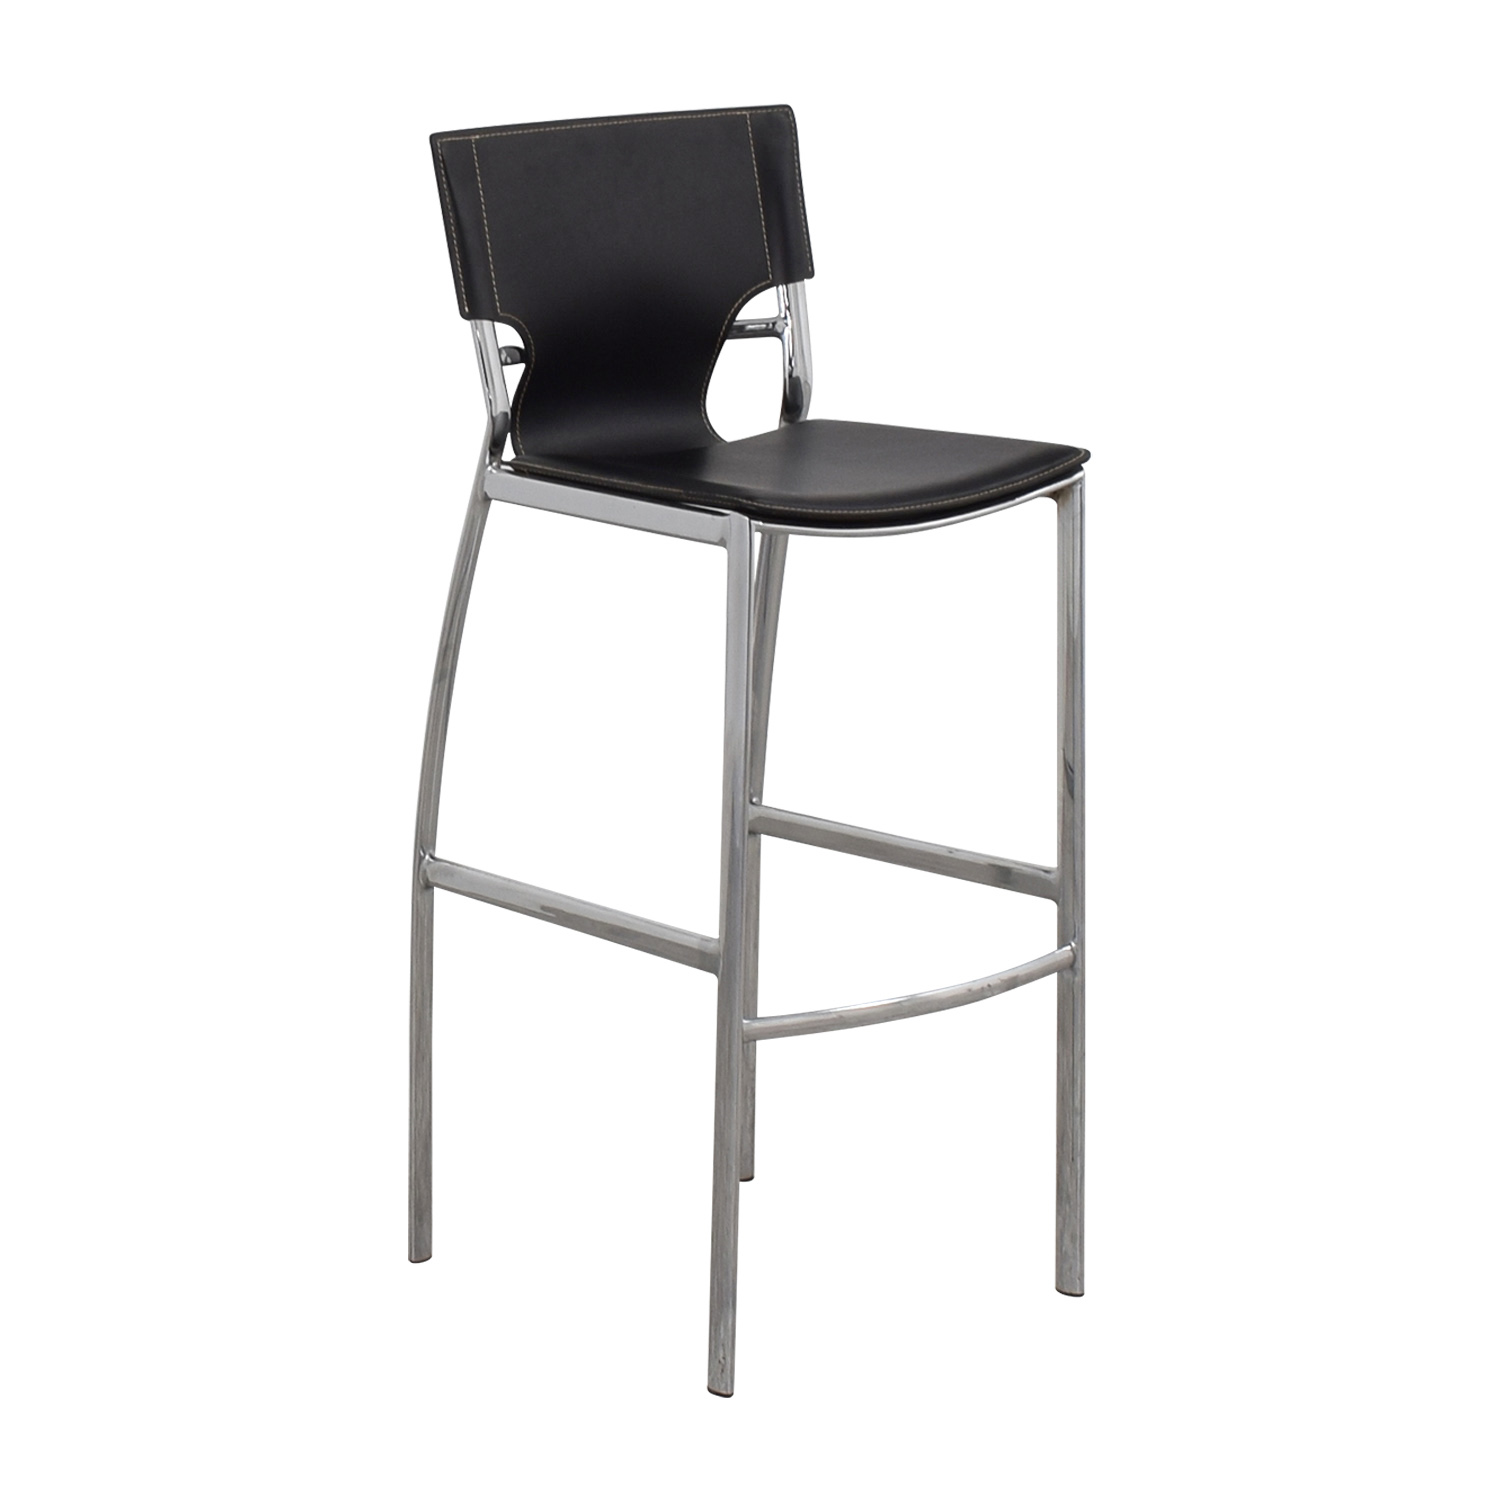 Modern Black Leatherette and Chrome Bar Chair second hand